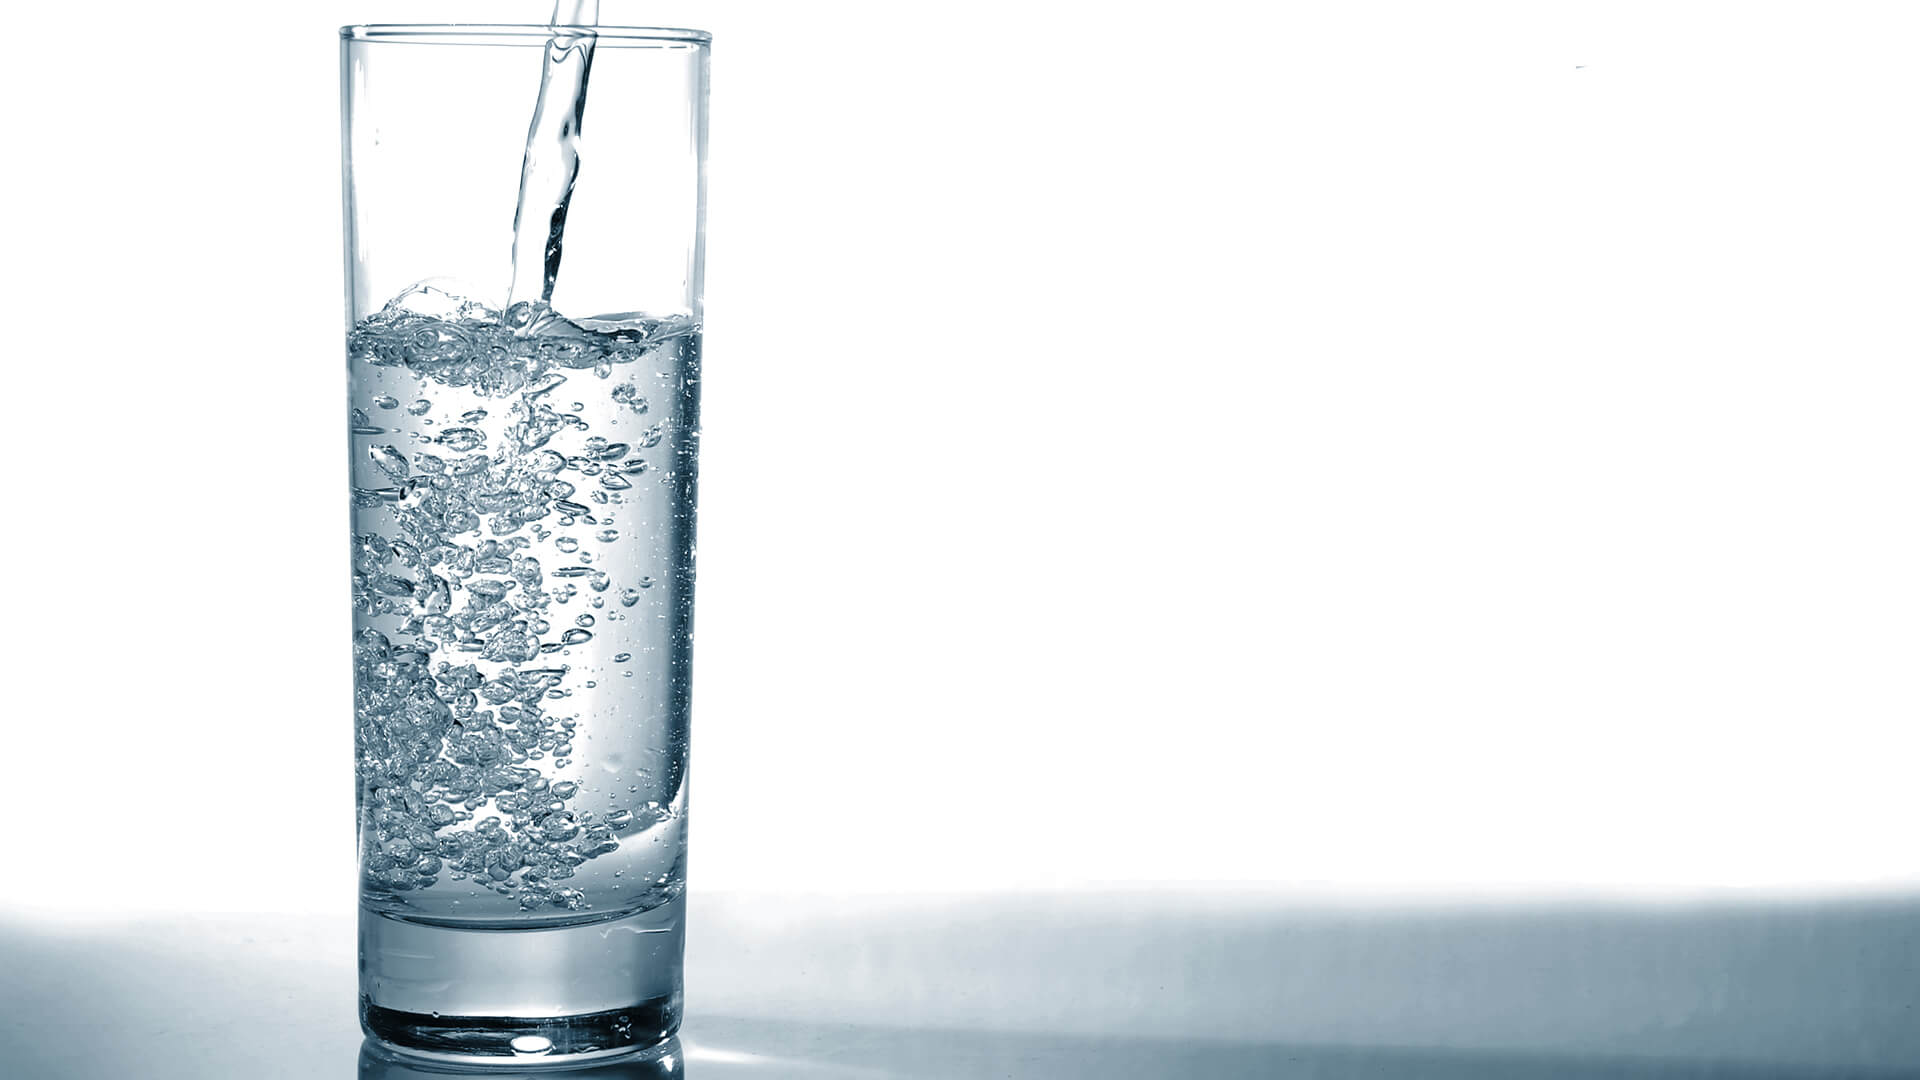 drink a glass of water before having meal